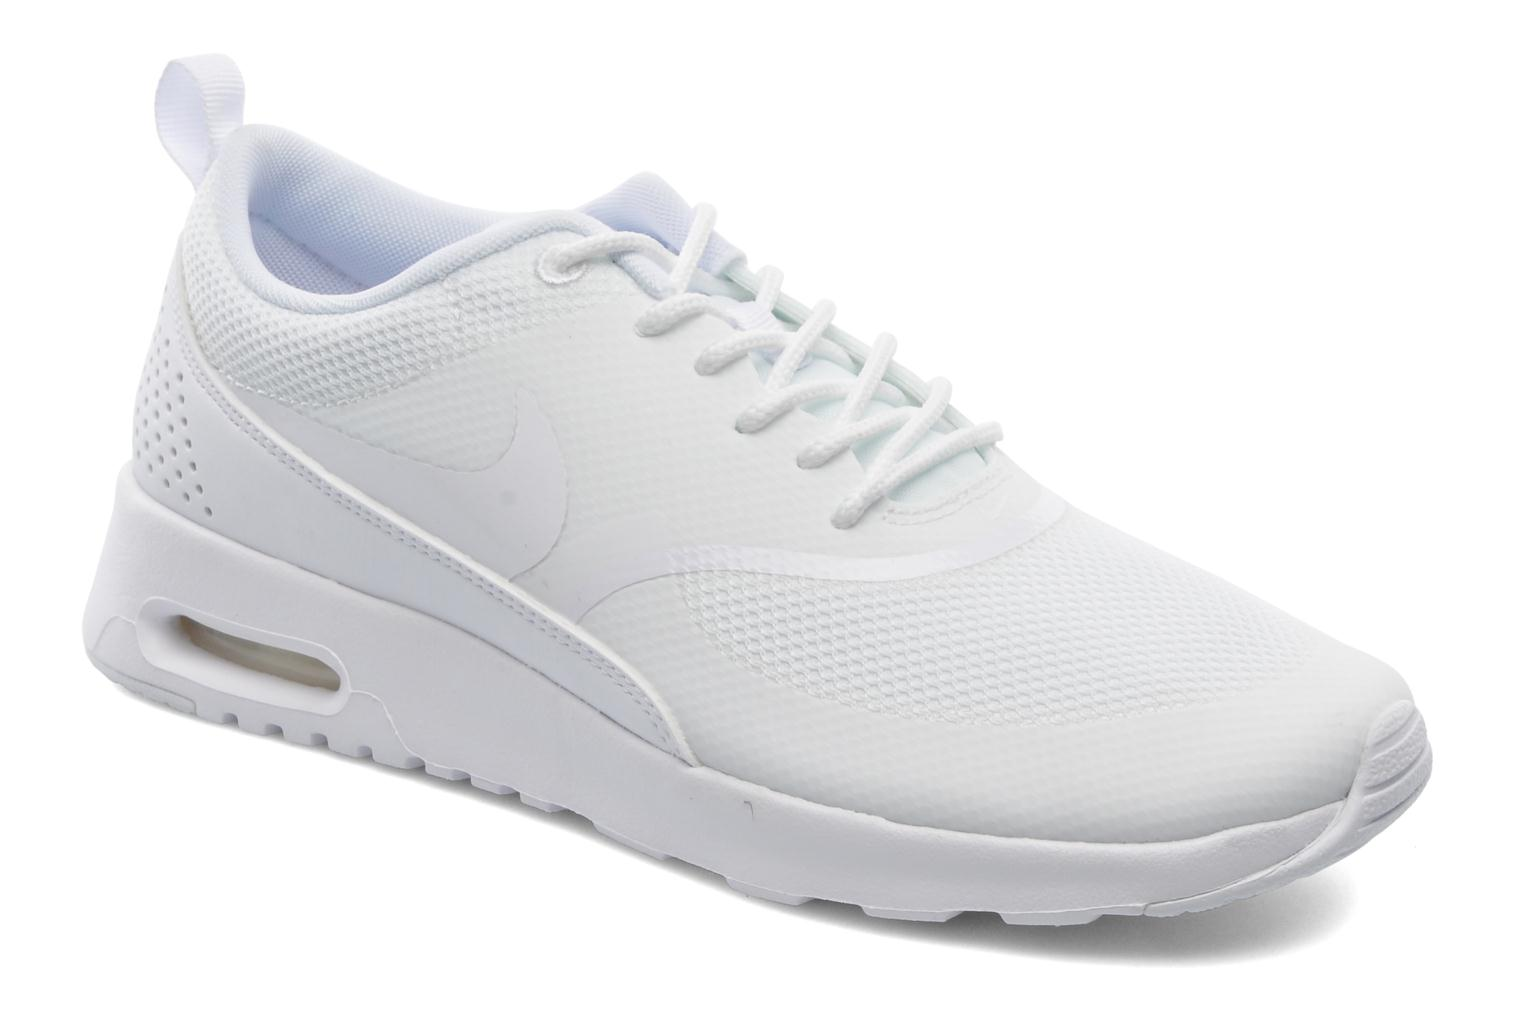 newest 202b9 a2b02 ... Trainers Nike Wmns Nike Air Max Thea White detailed view Pair view ...